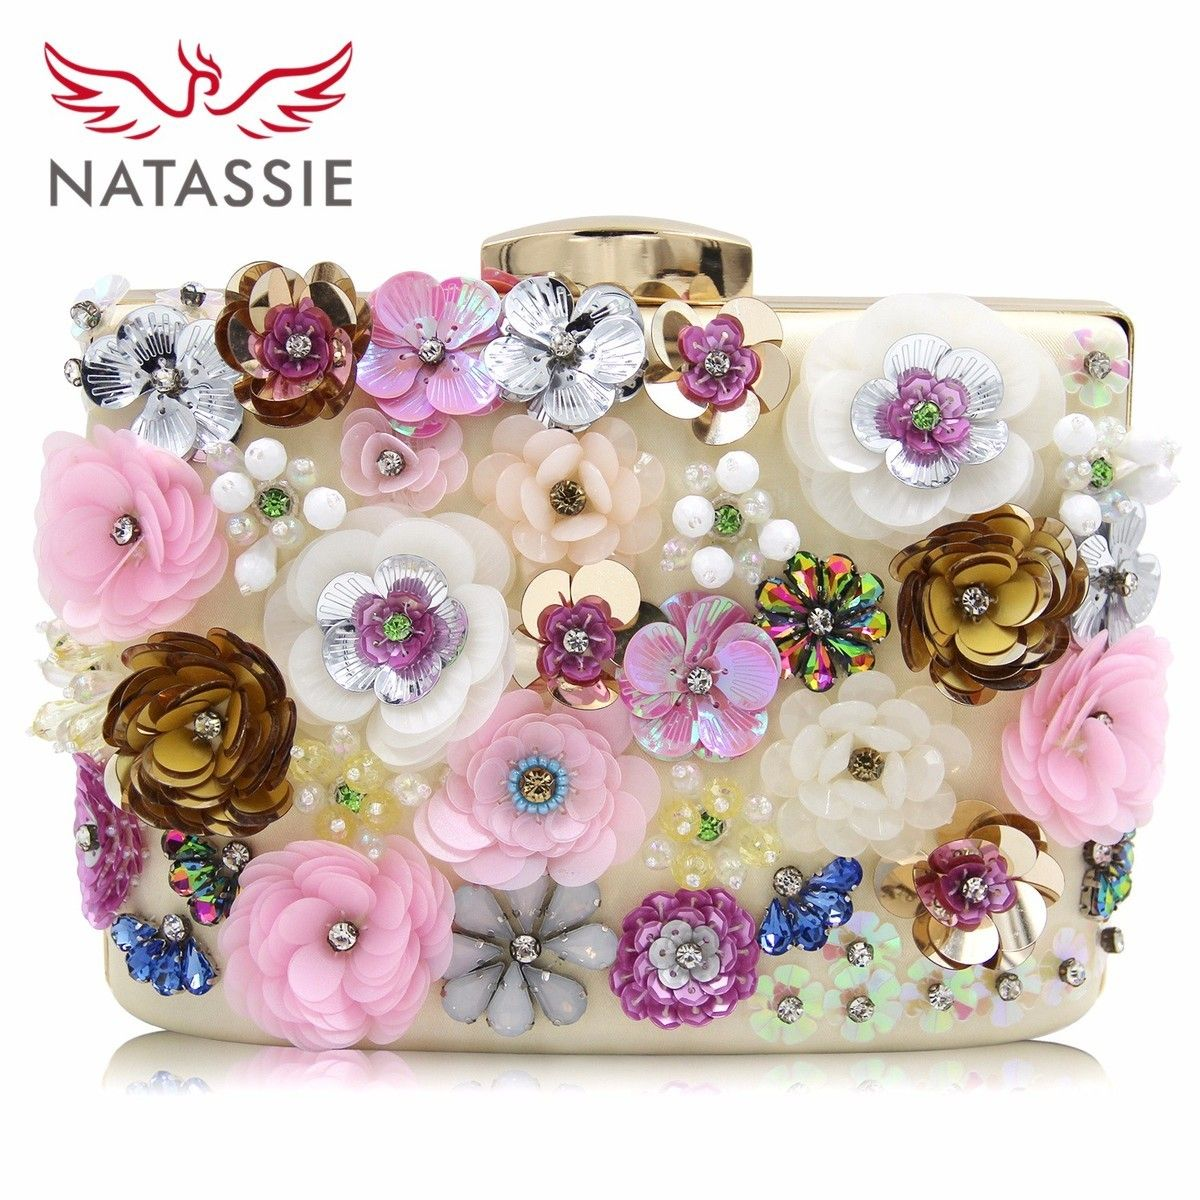 Natassie 2018 New Arrive Women Wedding Clutches Female Day Bags Flower Party Bag Ladies Meeting Day Clutch Purses Good Quality